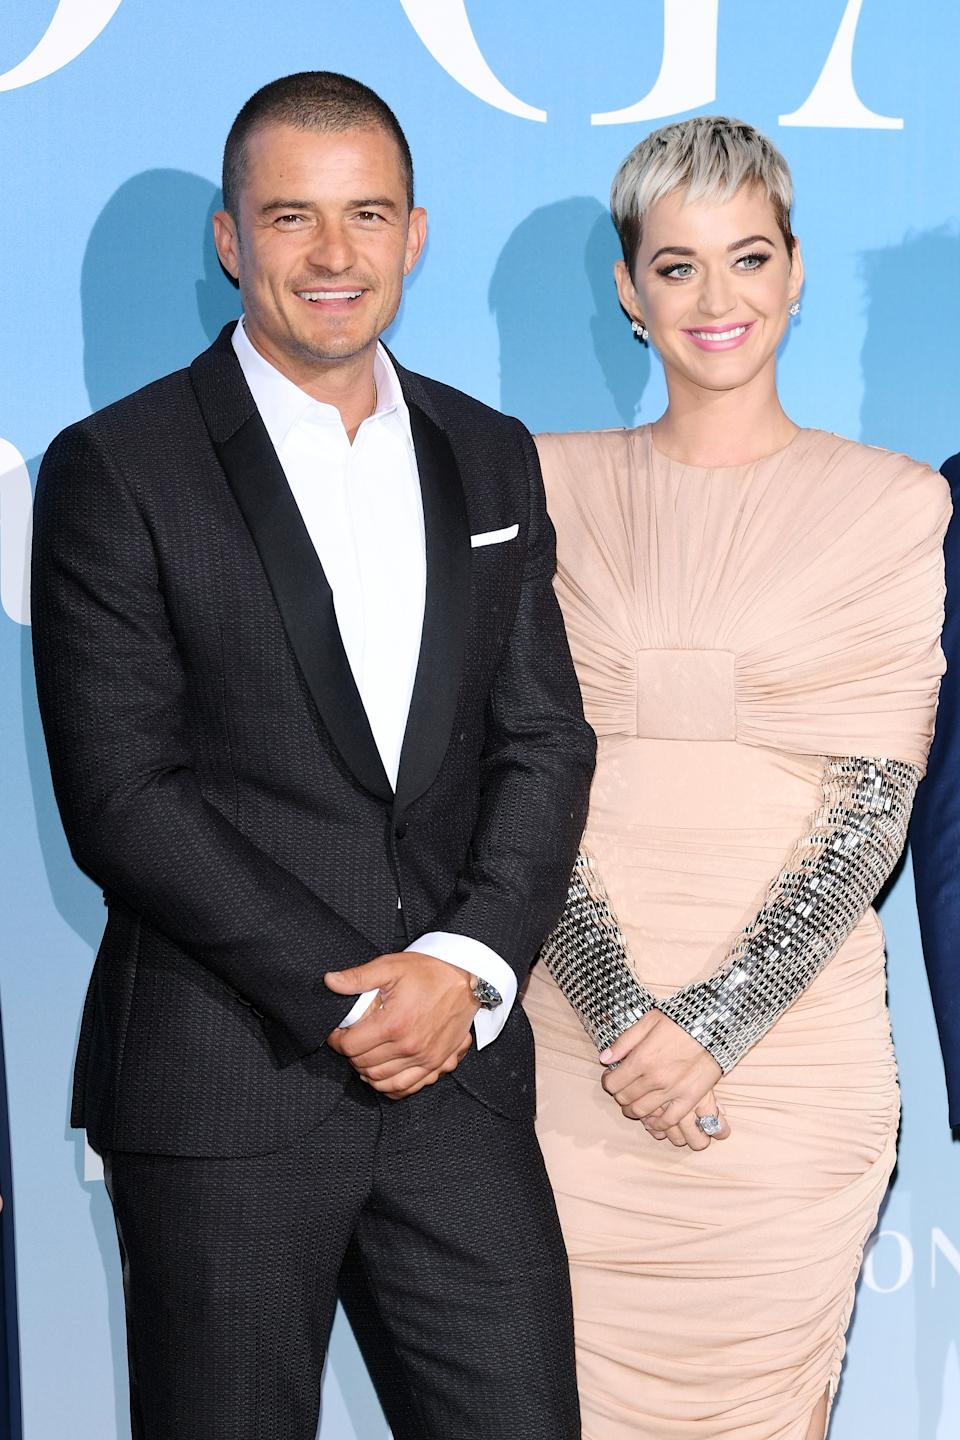 Orlando Bloom and Katy Perry attend the Gala for the Global Ocean hosted by H.S.H. Prince Albert II of Monaco at Opera of Monte-Carlo on September 26, 2018 in Monte-Carlo, Monaco.  (Photo by Daniele Venturelli/Daniele Venturelli/ Getty Images)